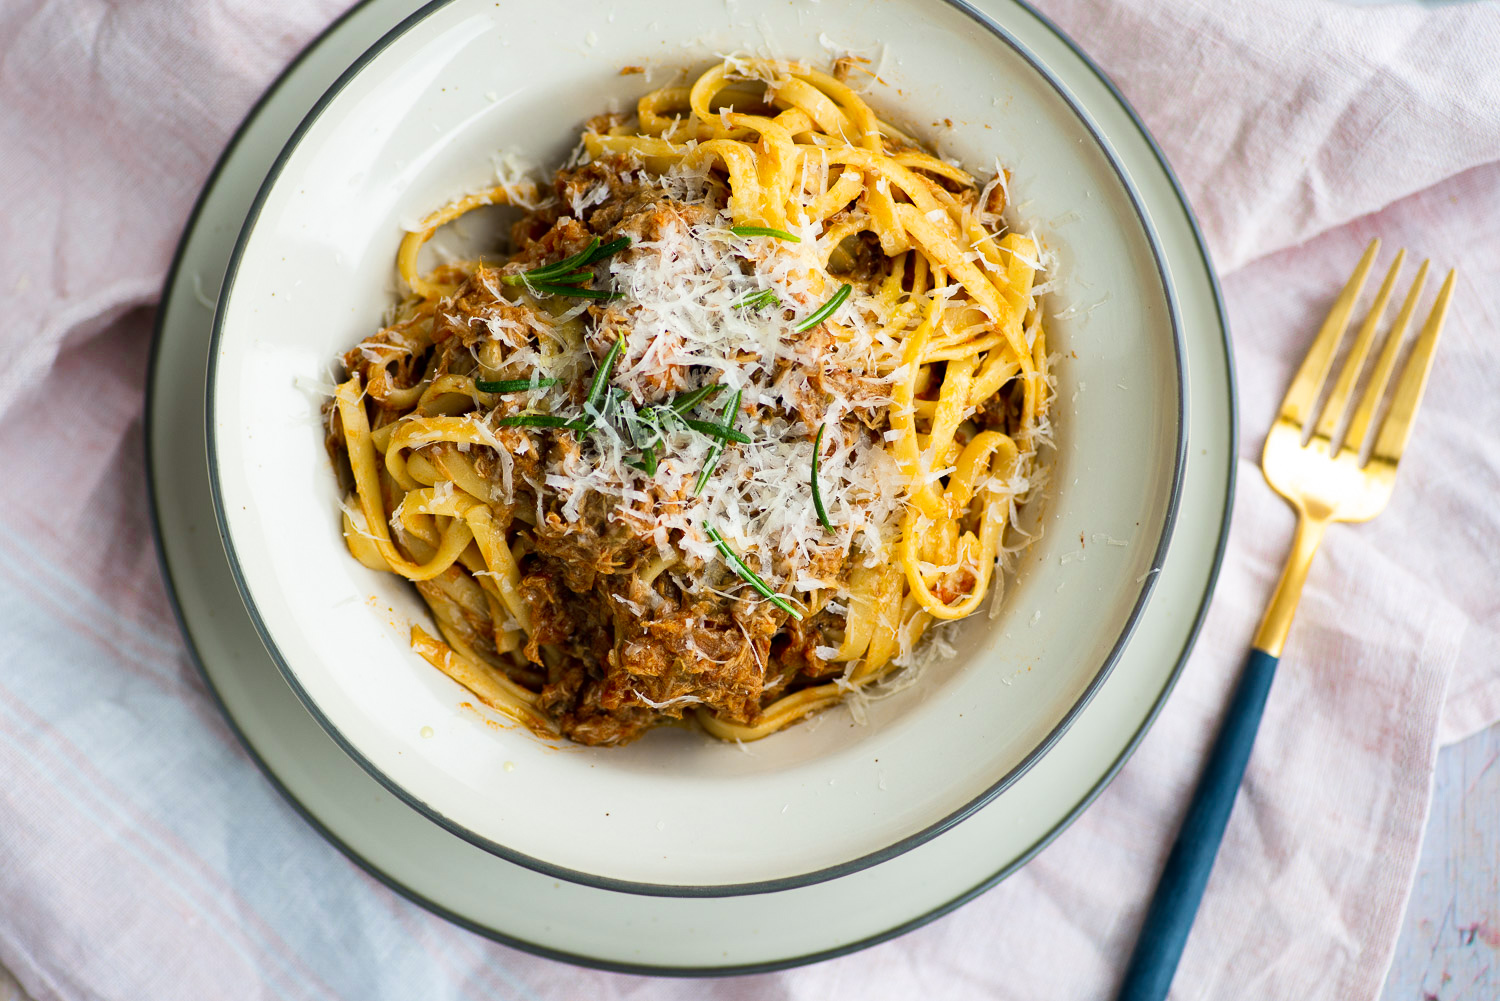 Linguine pasta with slow cooked chicken tomato sauce